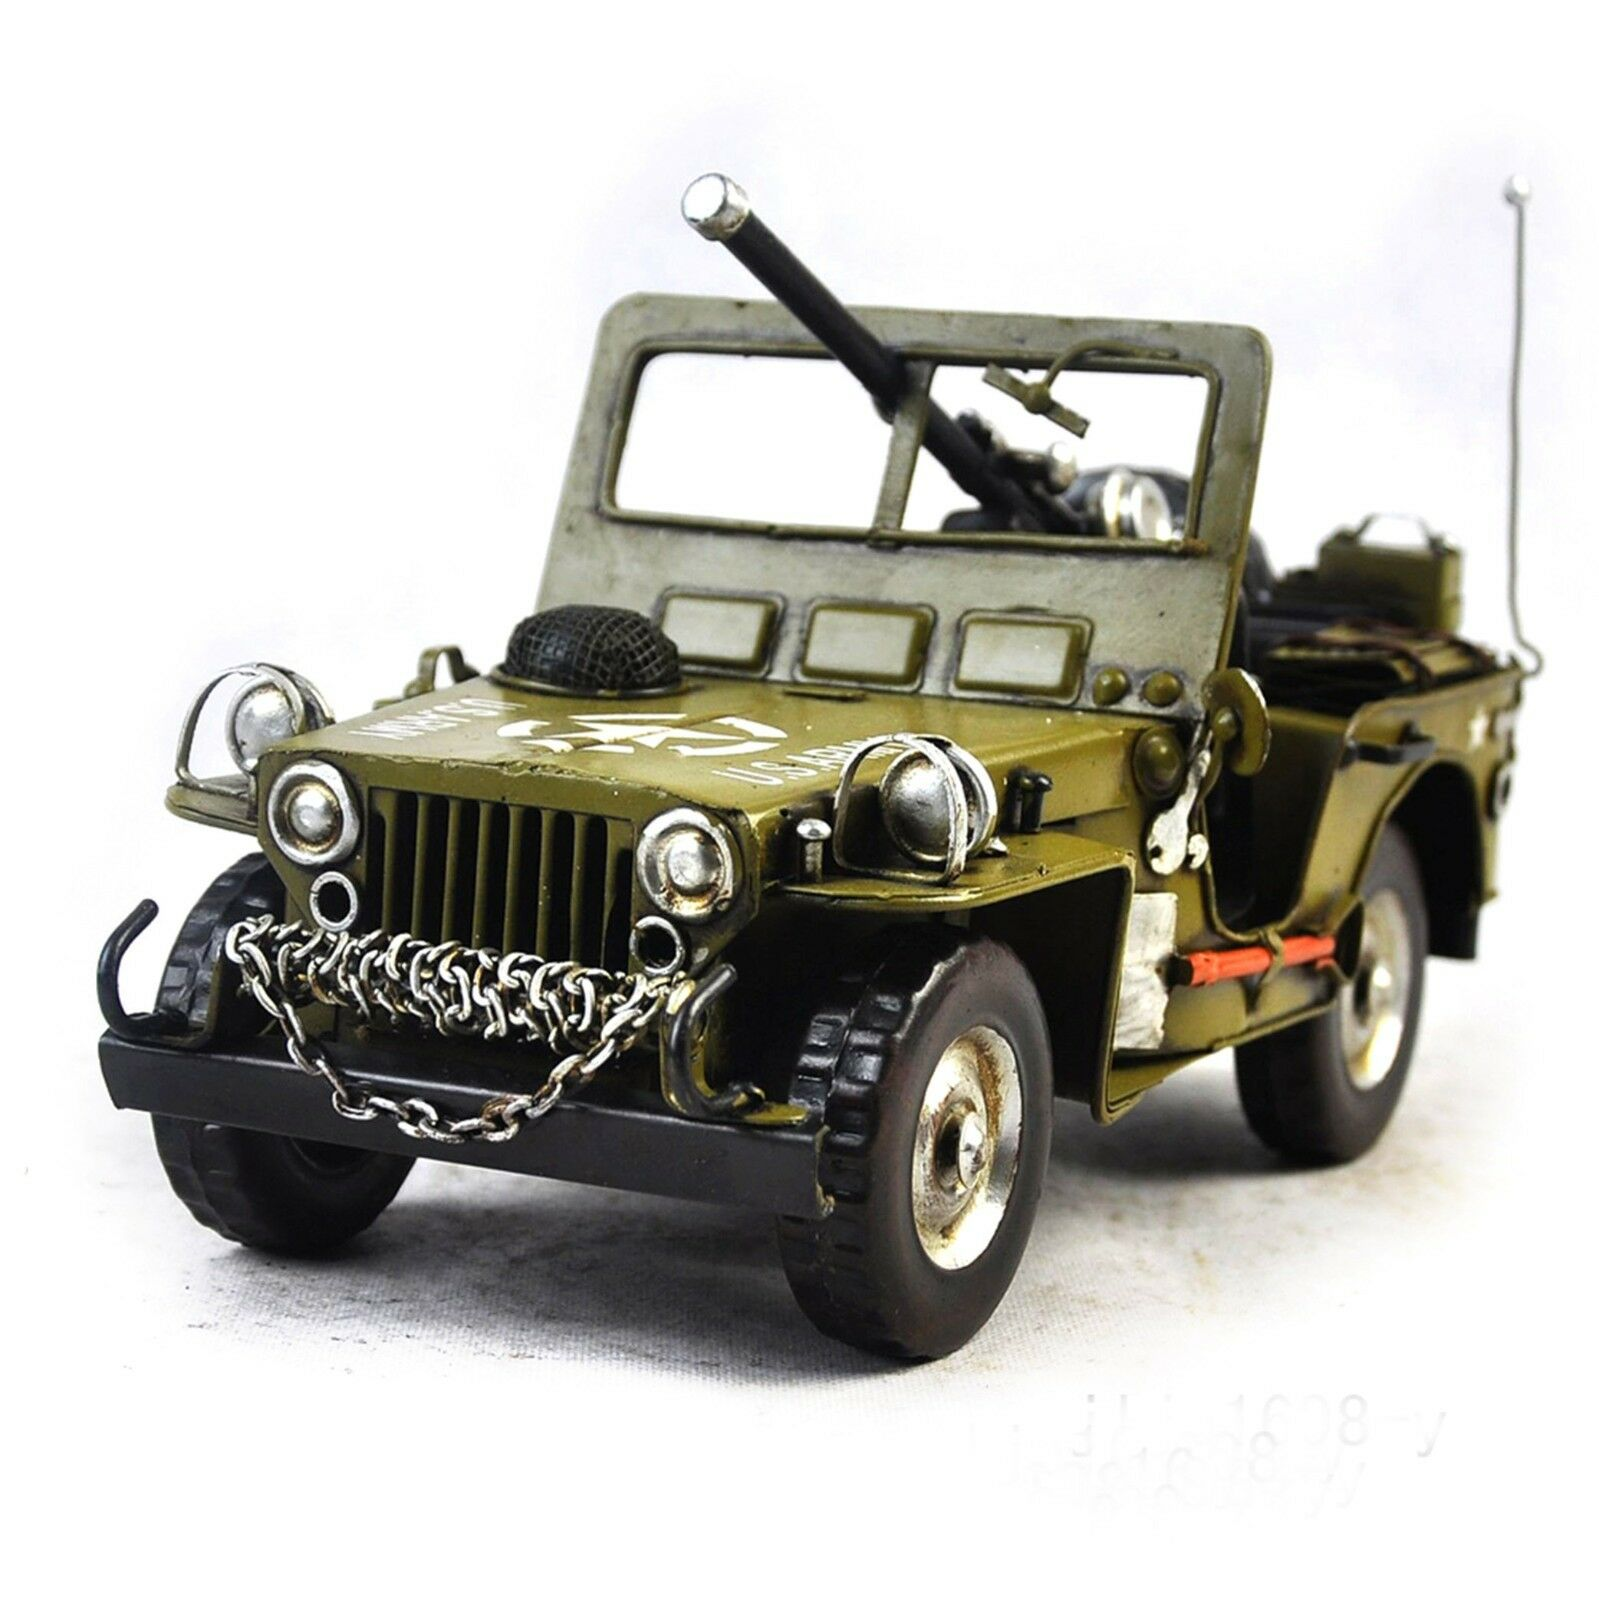 Handmade1940 Military Vehicle Jeep Off-Road 1 12 Antique Style Metal Model